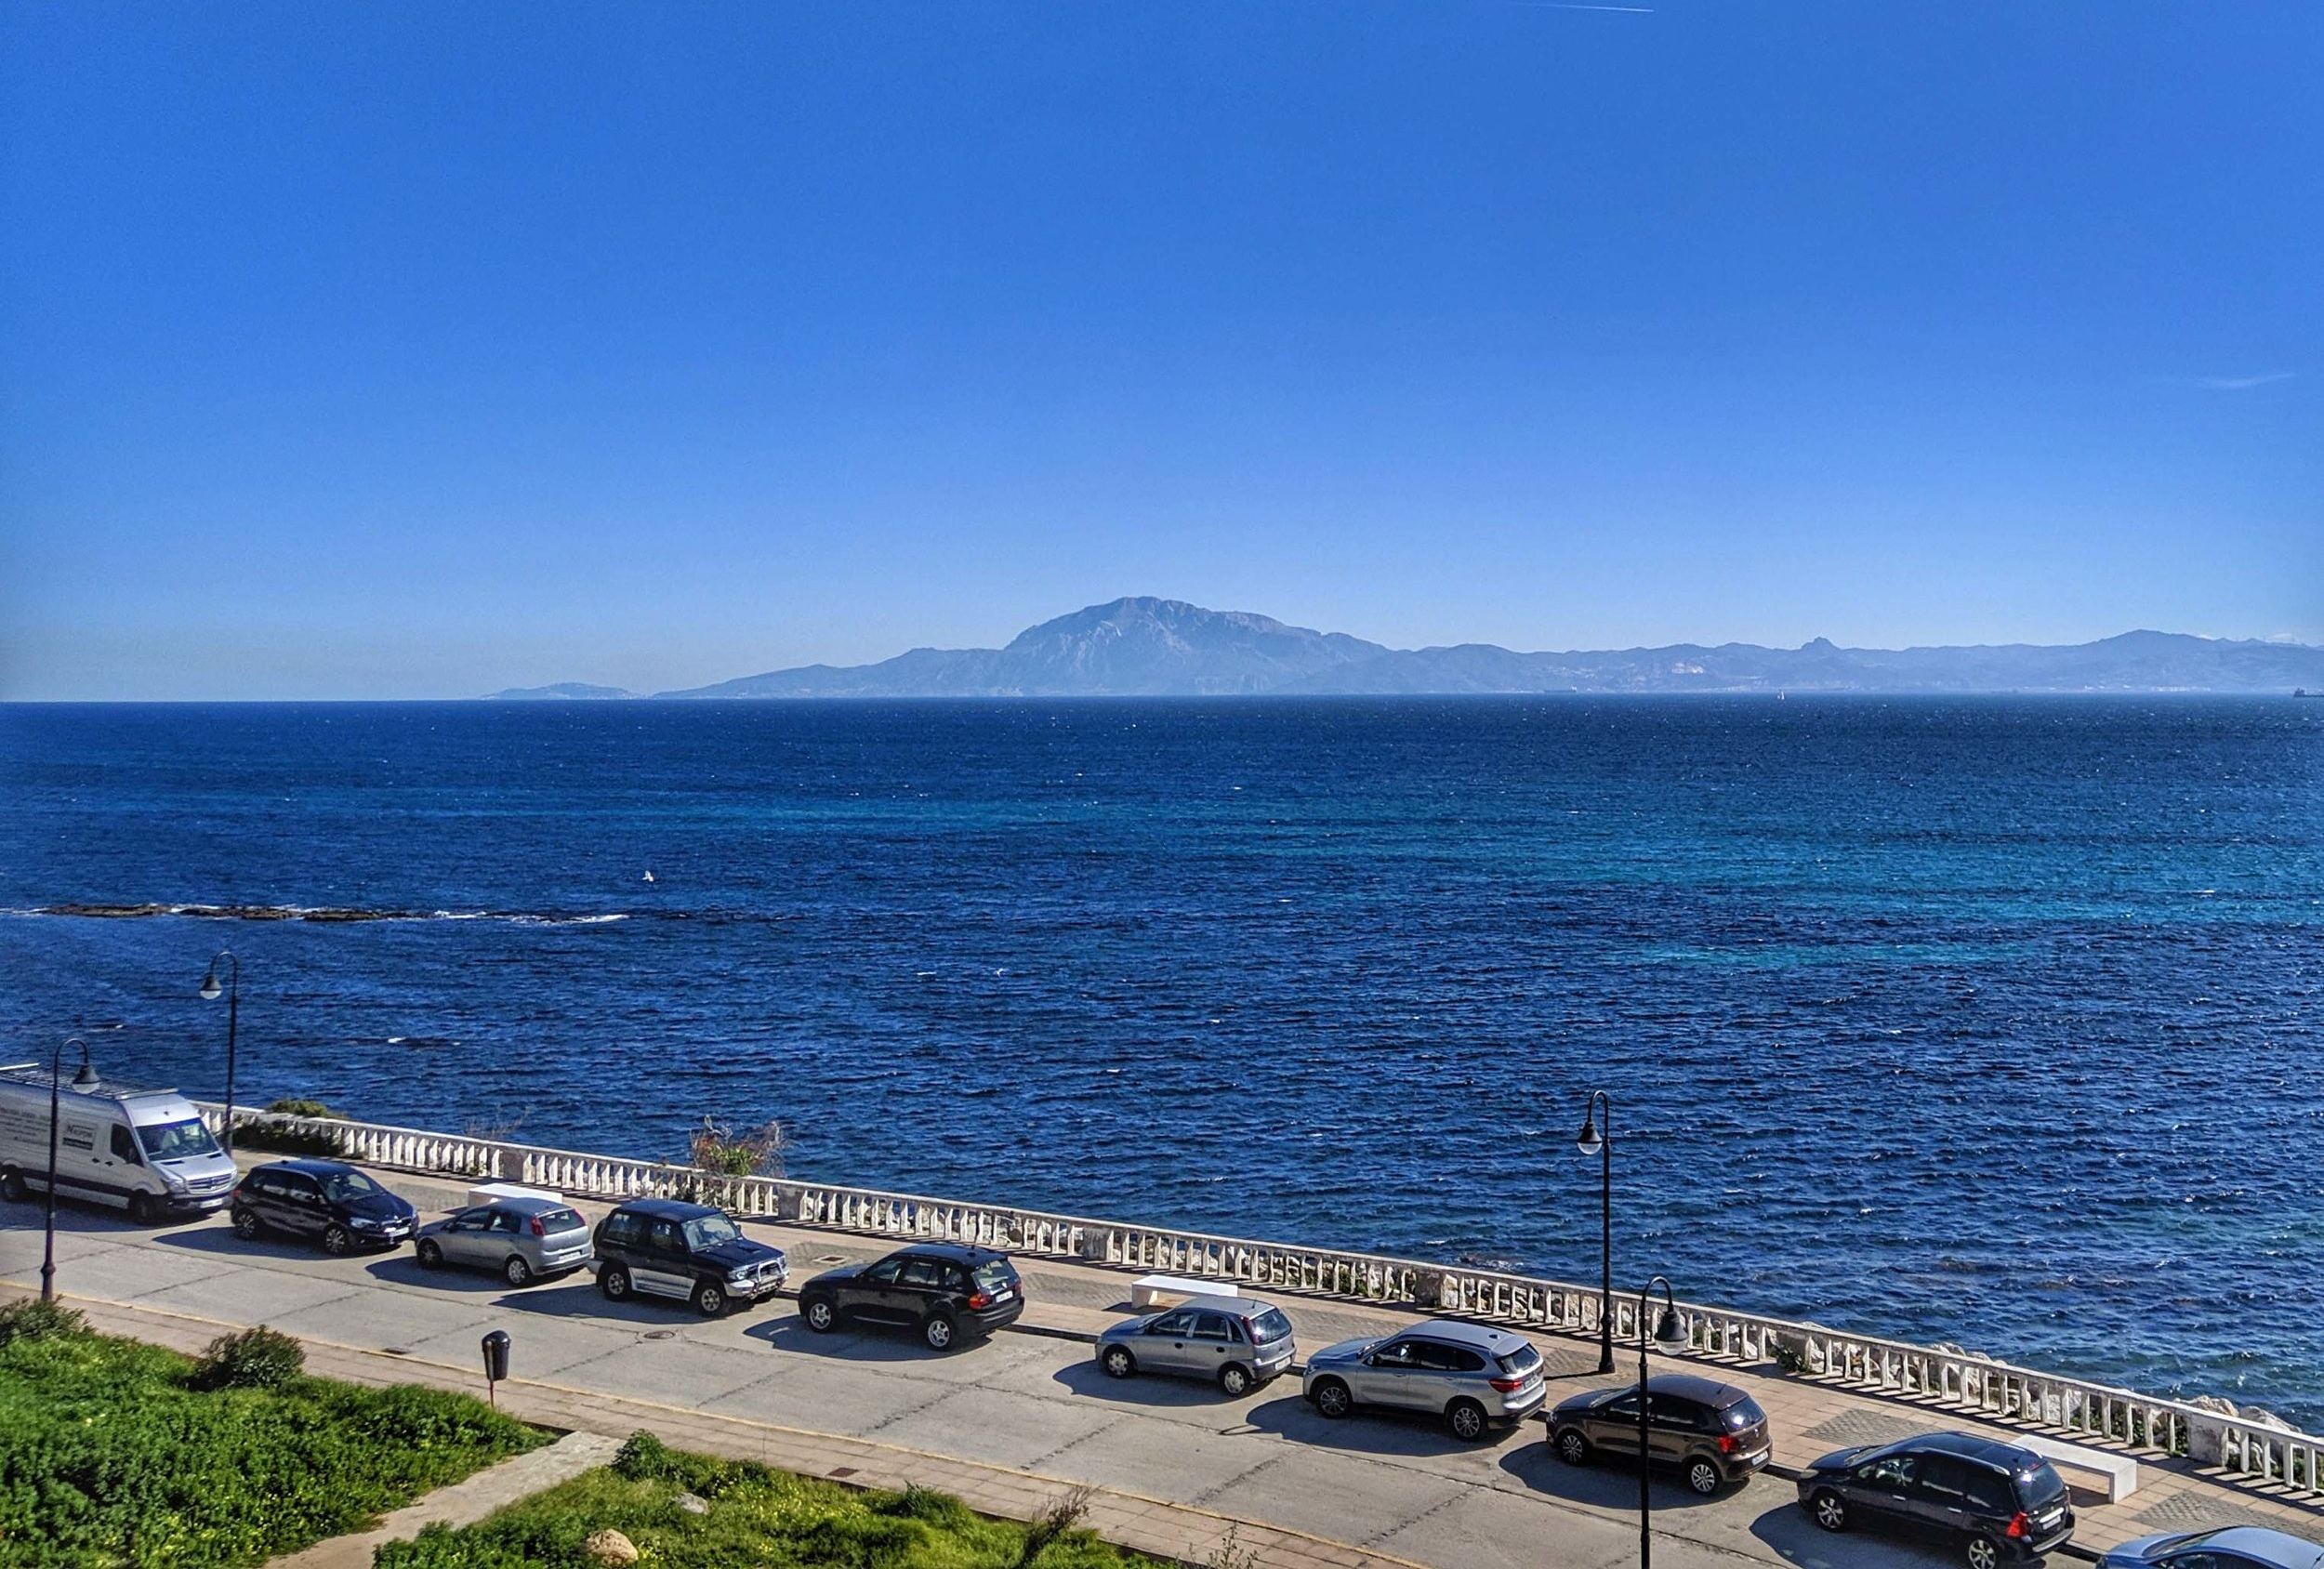 Views over to Africa from Tarifa